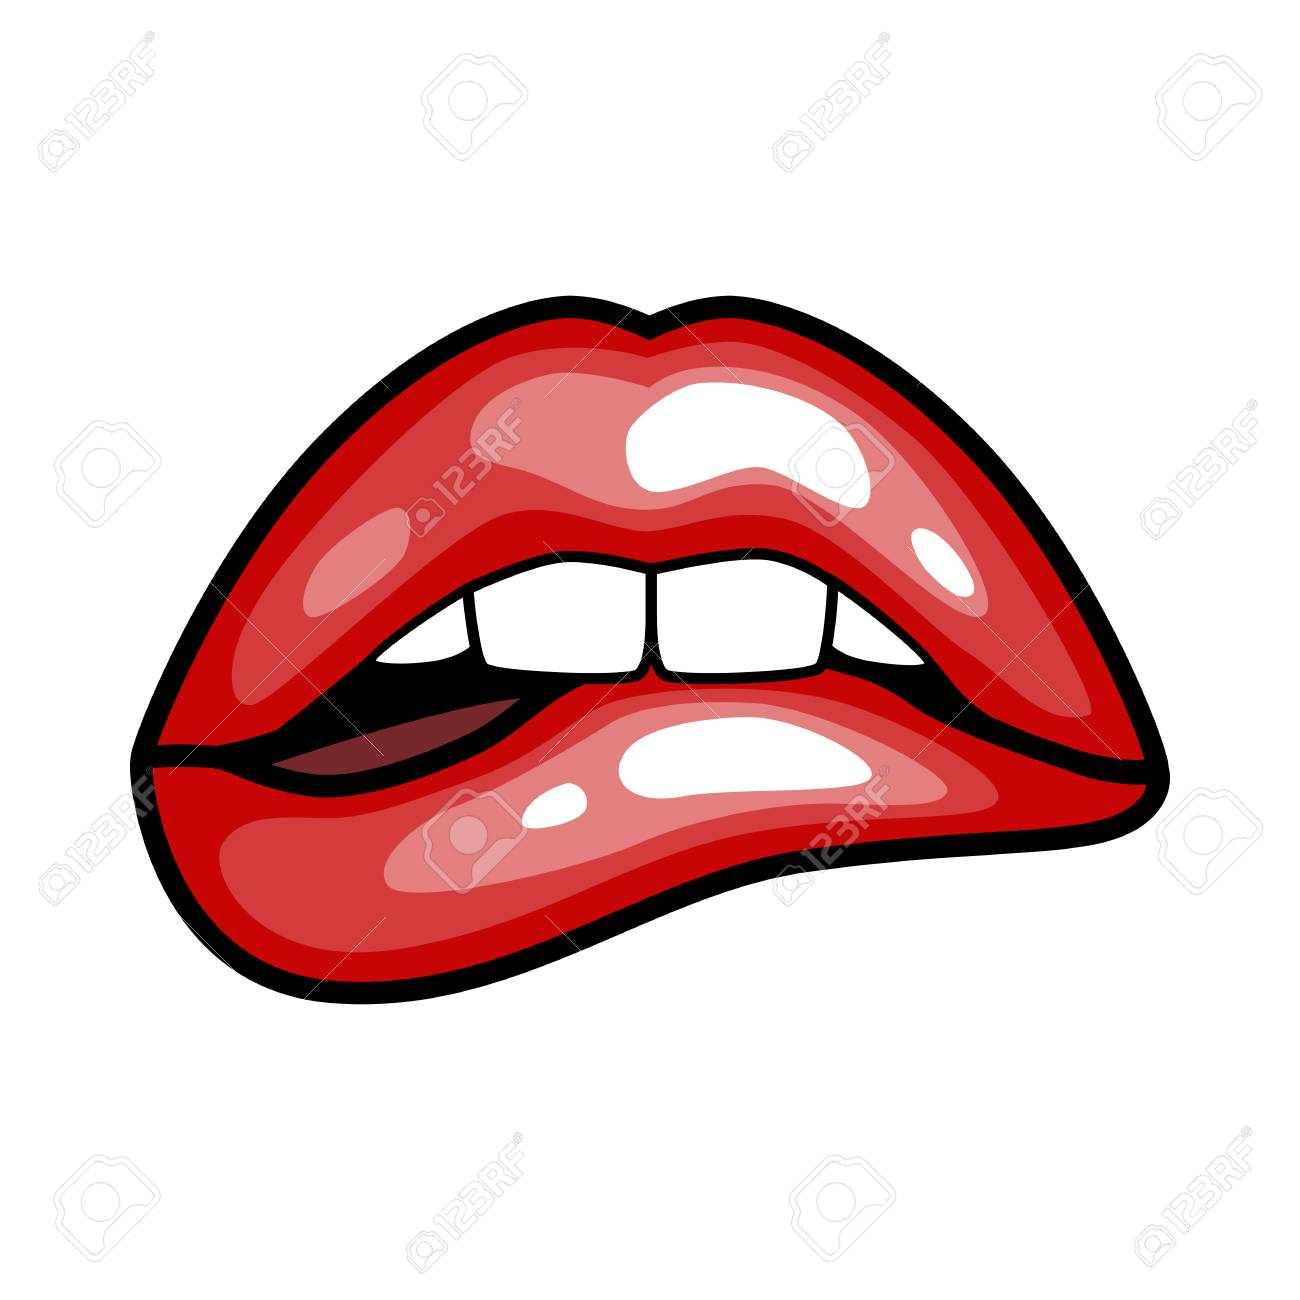 Fashion Girls Lips With Red Lipstick In Cartoon Pop Art Style Royalty Free Cliparts Vectors And Stock Illustration Image 80631858